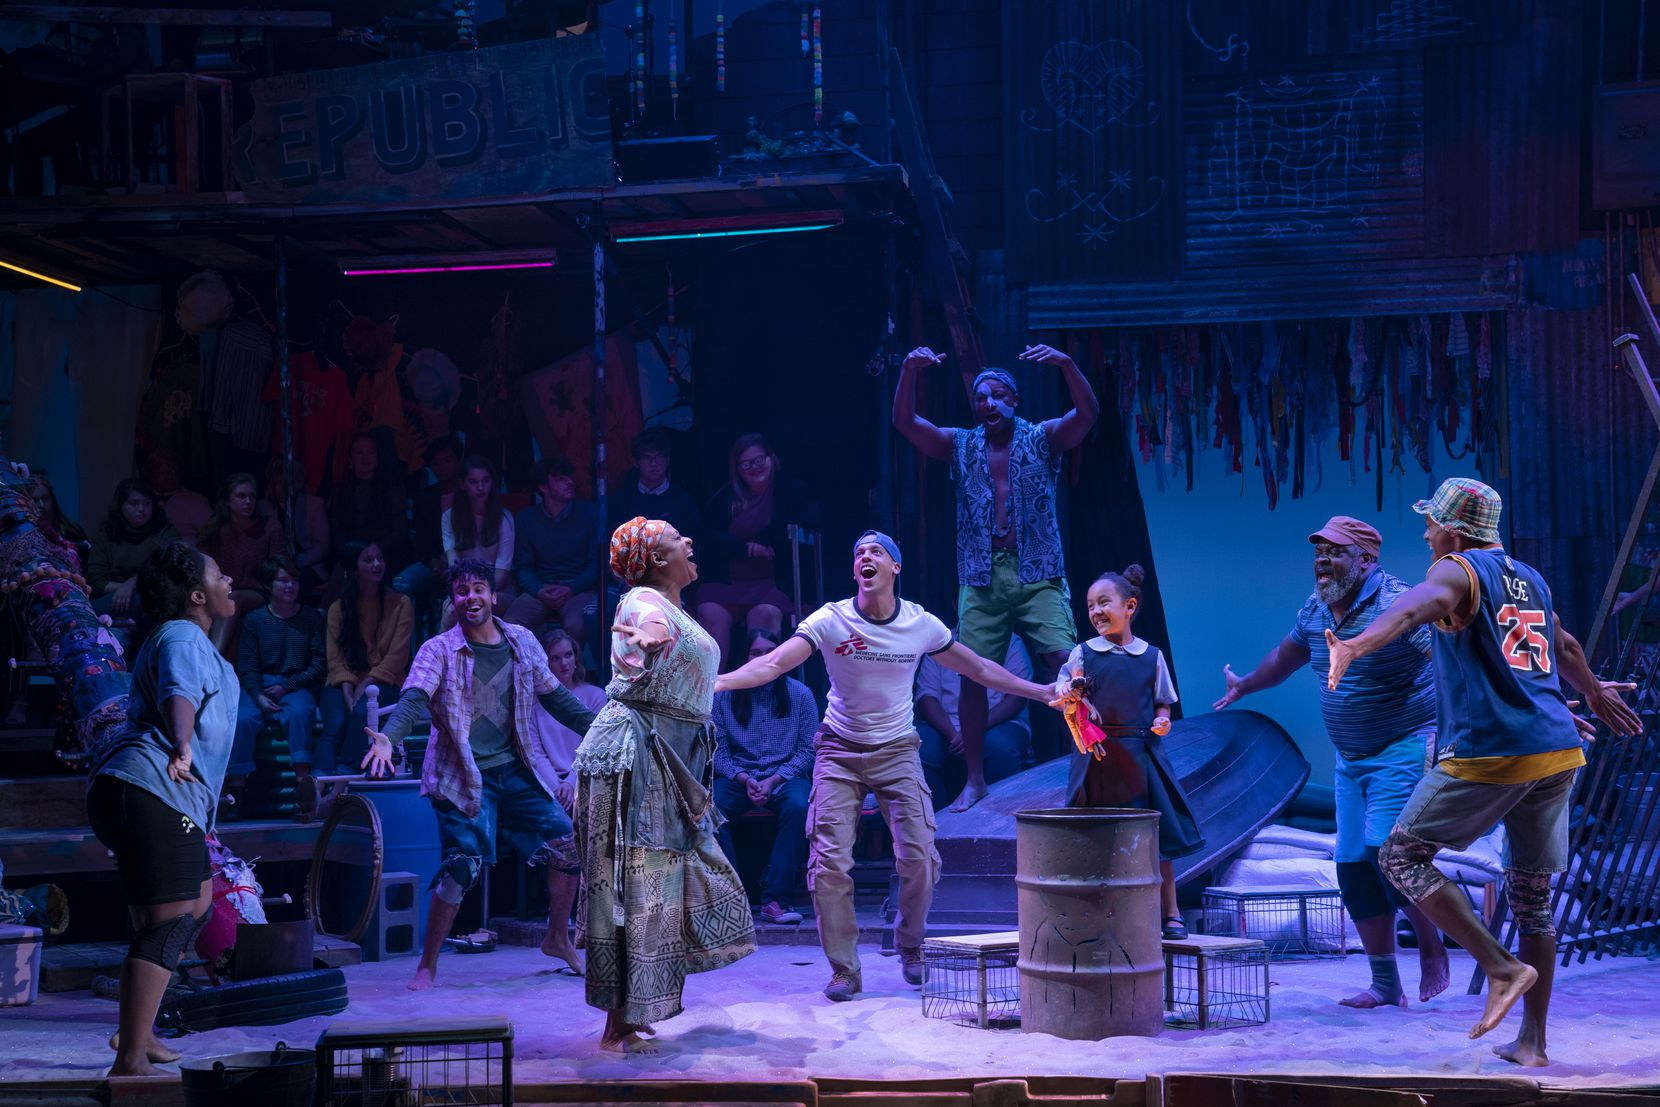 """A scene from the North American touring production of director Michael Arden's 2017 revival of """"Once on This Island."""" Part of the audience sits on stage, real sand beneath their feet, in Arden's immersive version of the 1990 Broadway musical."""